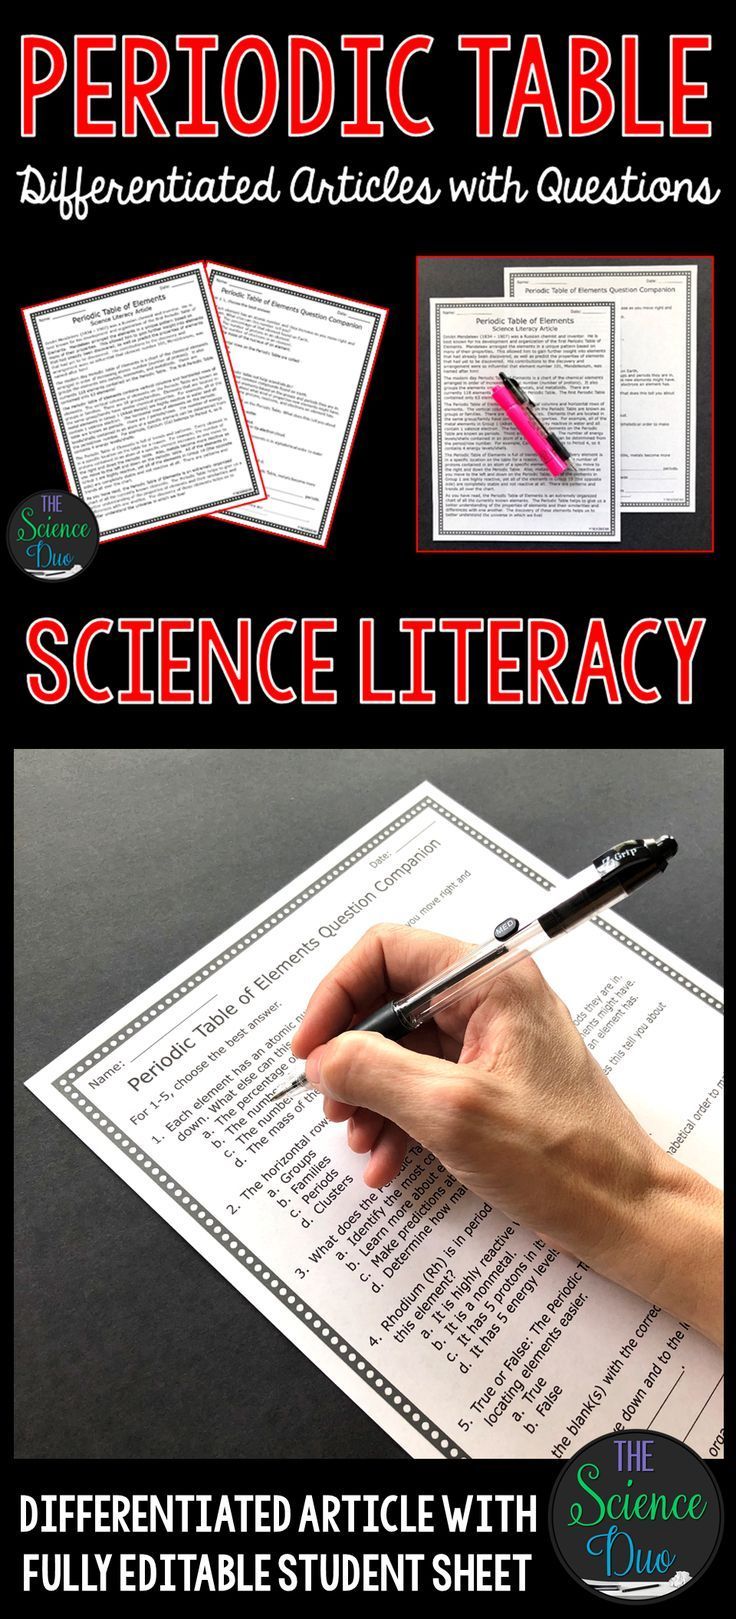 Periodic table of elements science literacy article tpt misc this periodic table of elements science literacy article will help to support important science content and urtaz Images